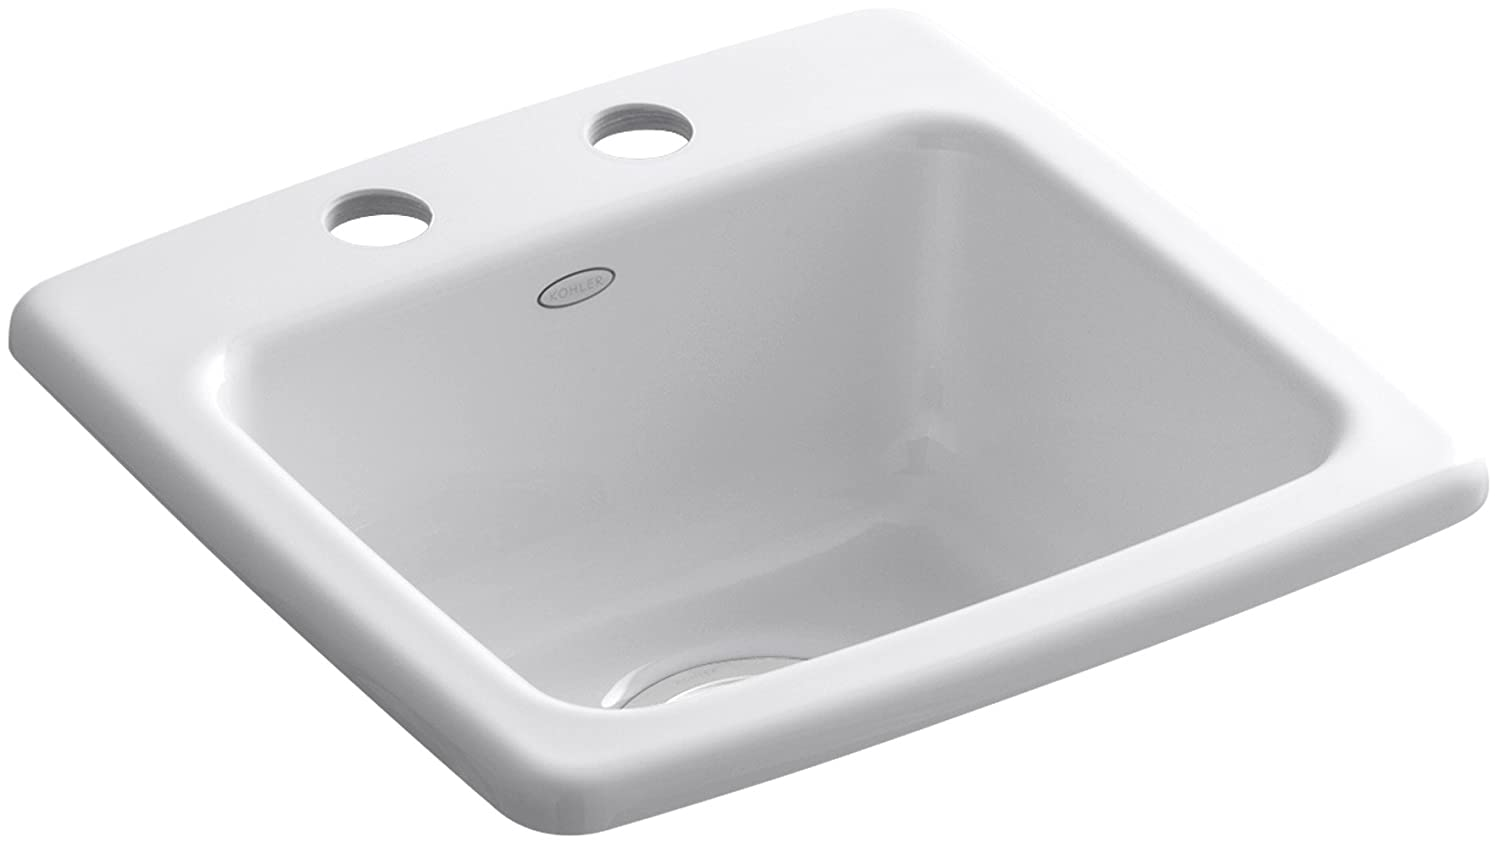 KOHLER K-6015-2-0 Gimlet Self-Rimming Entertainment Sink, White